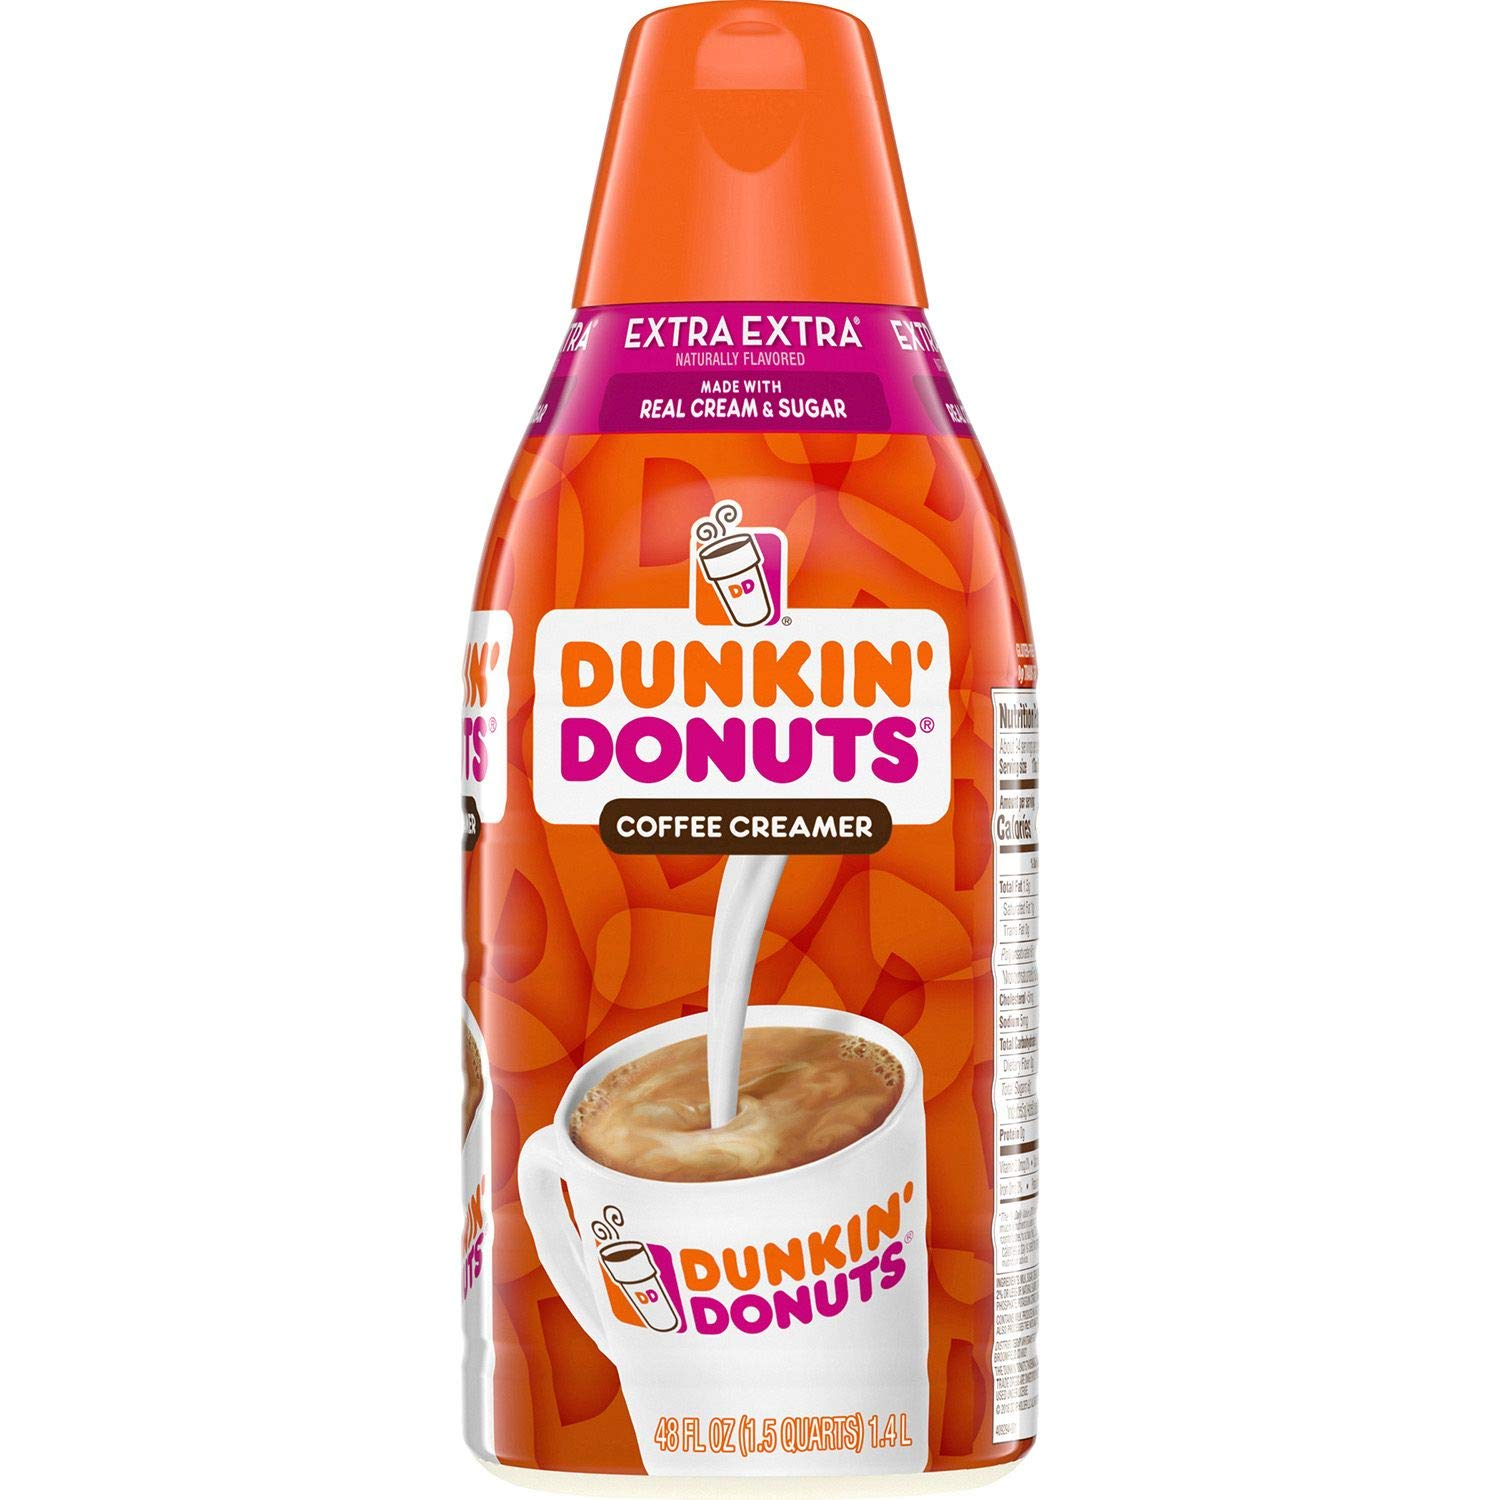 Dunkin' Donuts Extra Selling and selling Coffee Creamer 48 of Cheap pack oz. 4 A1